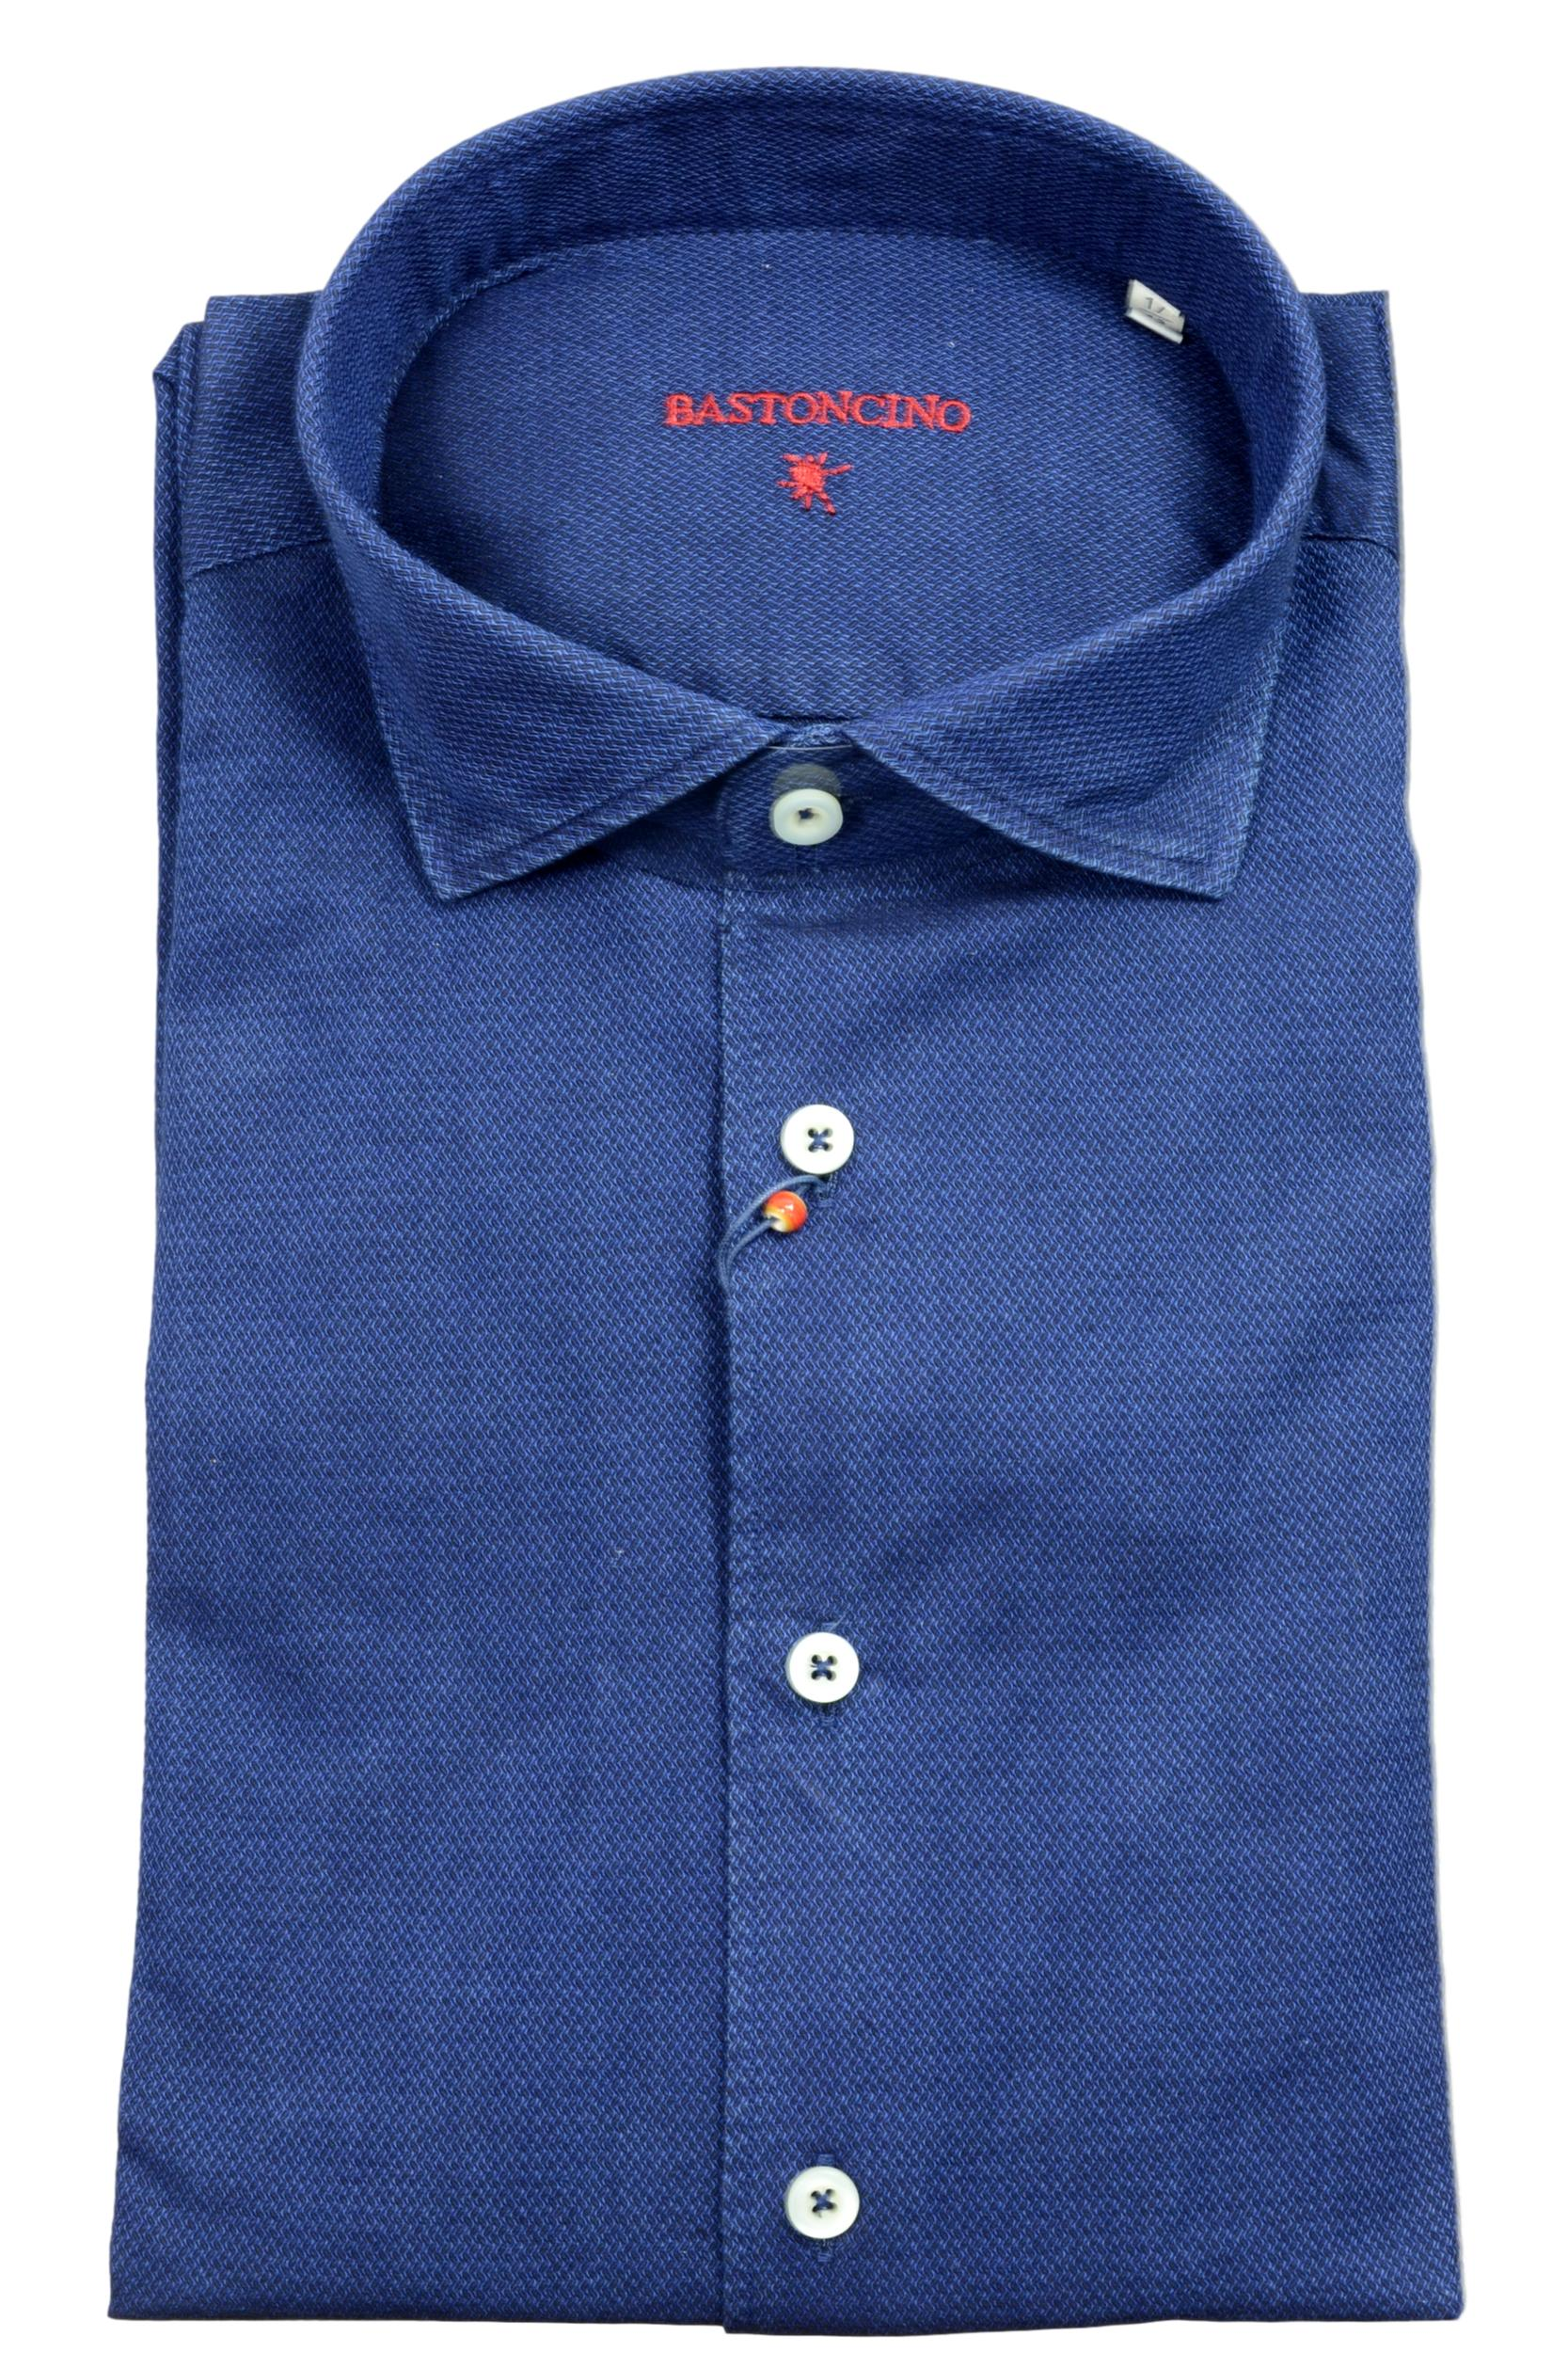 BASTONCINO CAMICIA UOMO SLIM FIT WASHED B1750 BLU FATTA IN ITALIA